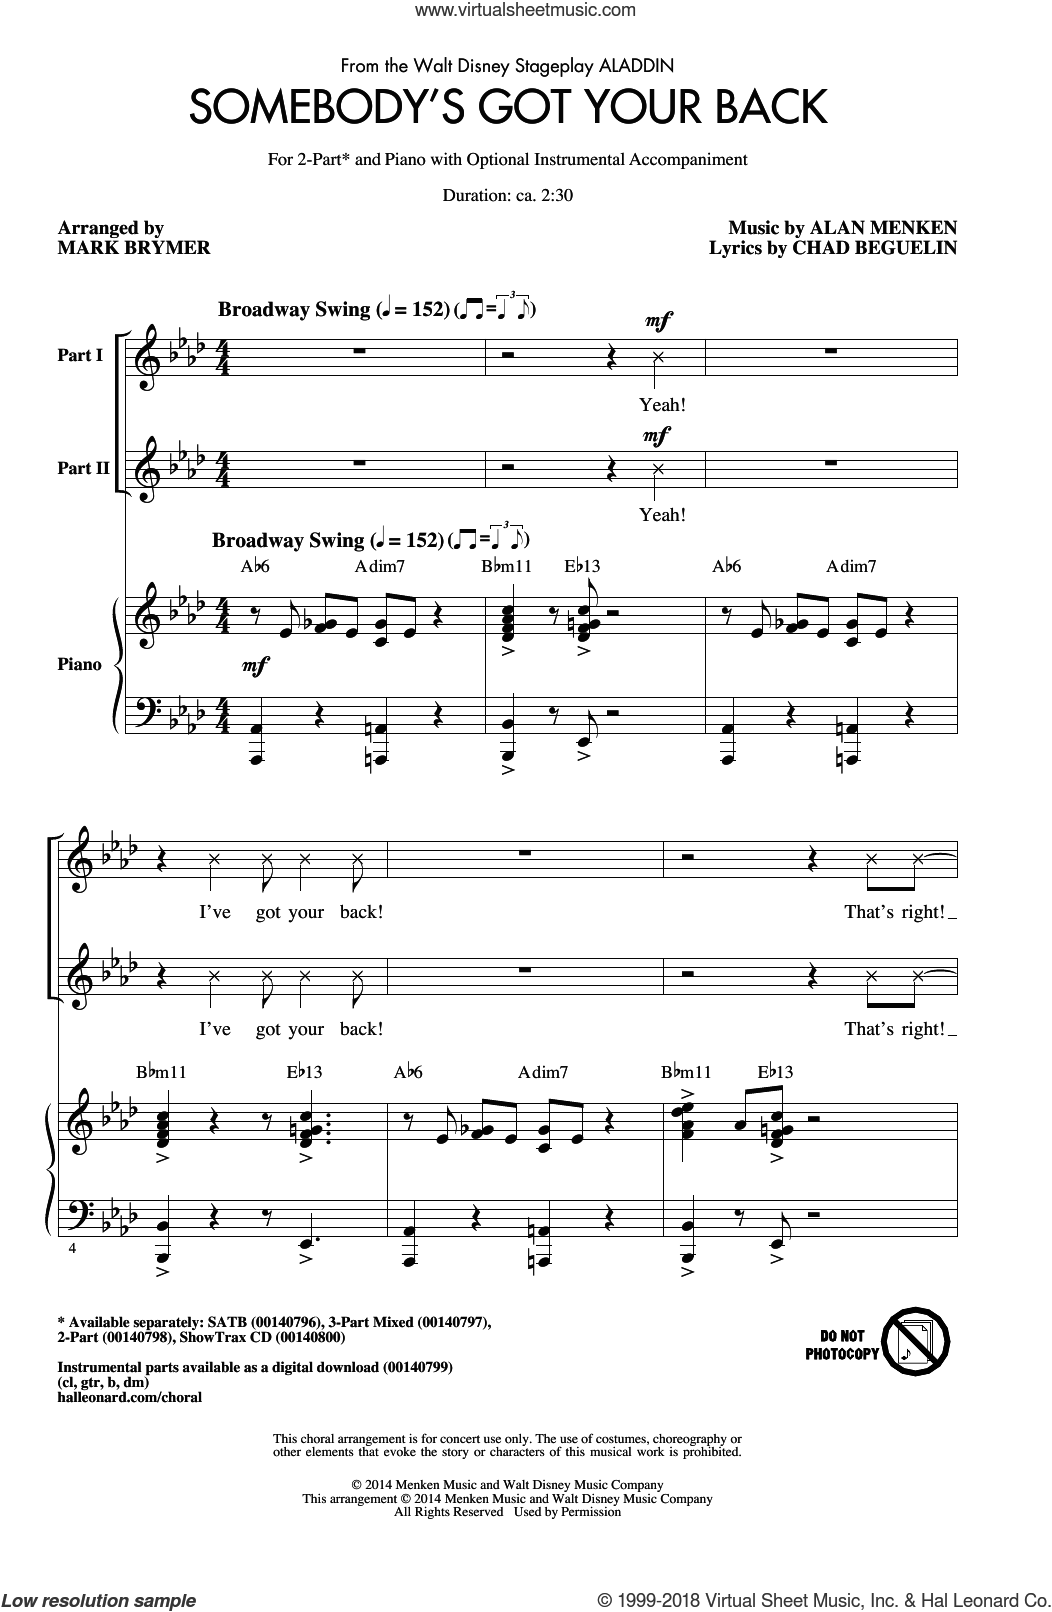 Somebody's Got Your Back sheet music for choir (2-Part) by Alan Menken, Mark Brymer and Chad Beguelin, intermediate duet